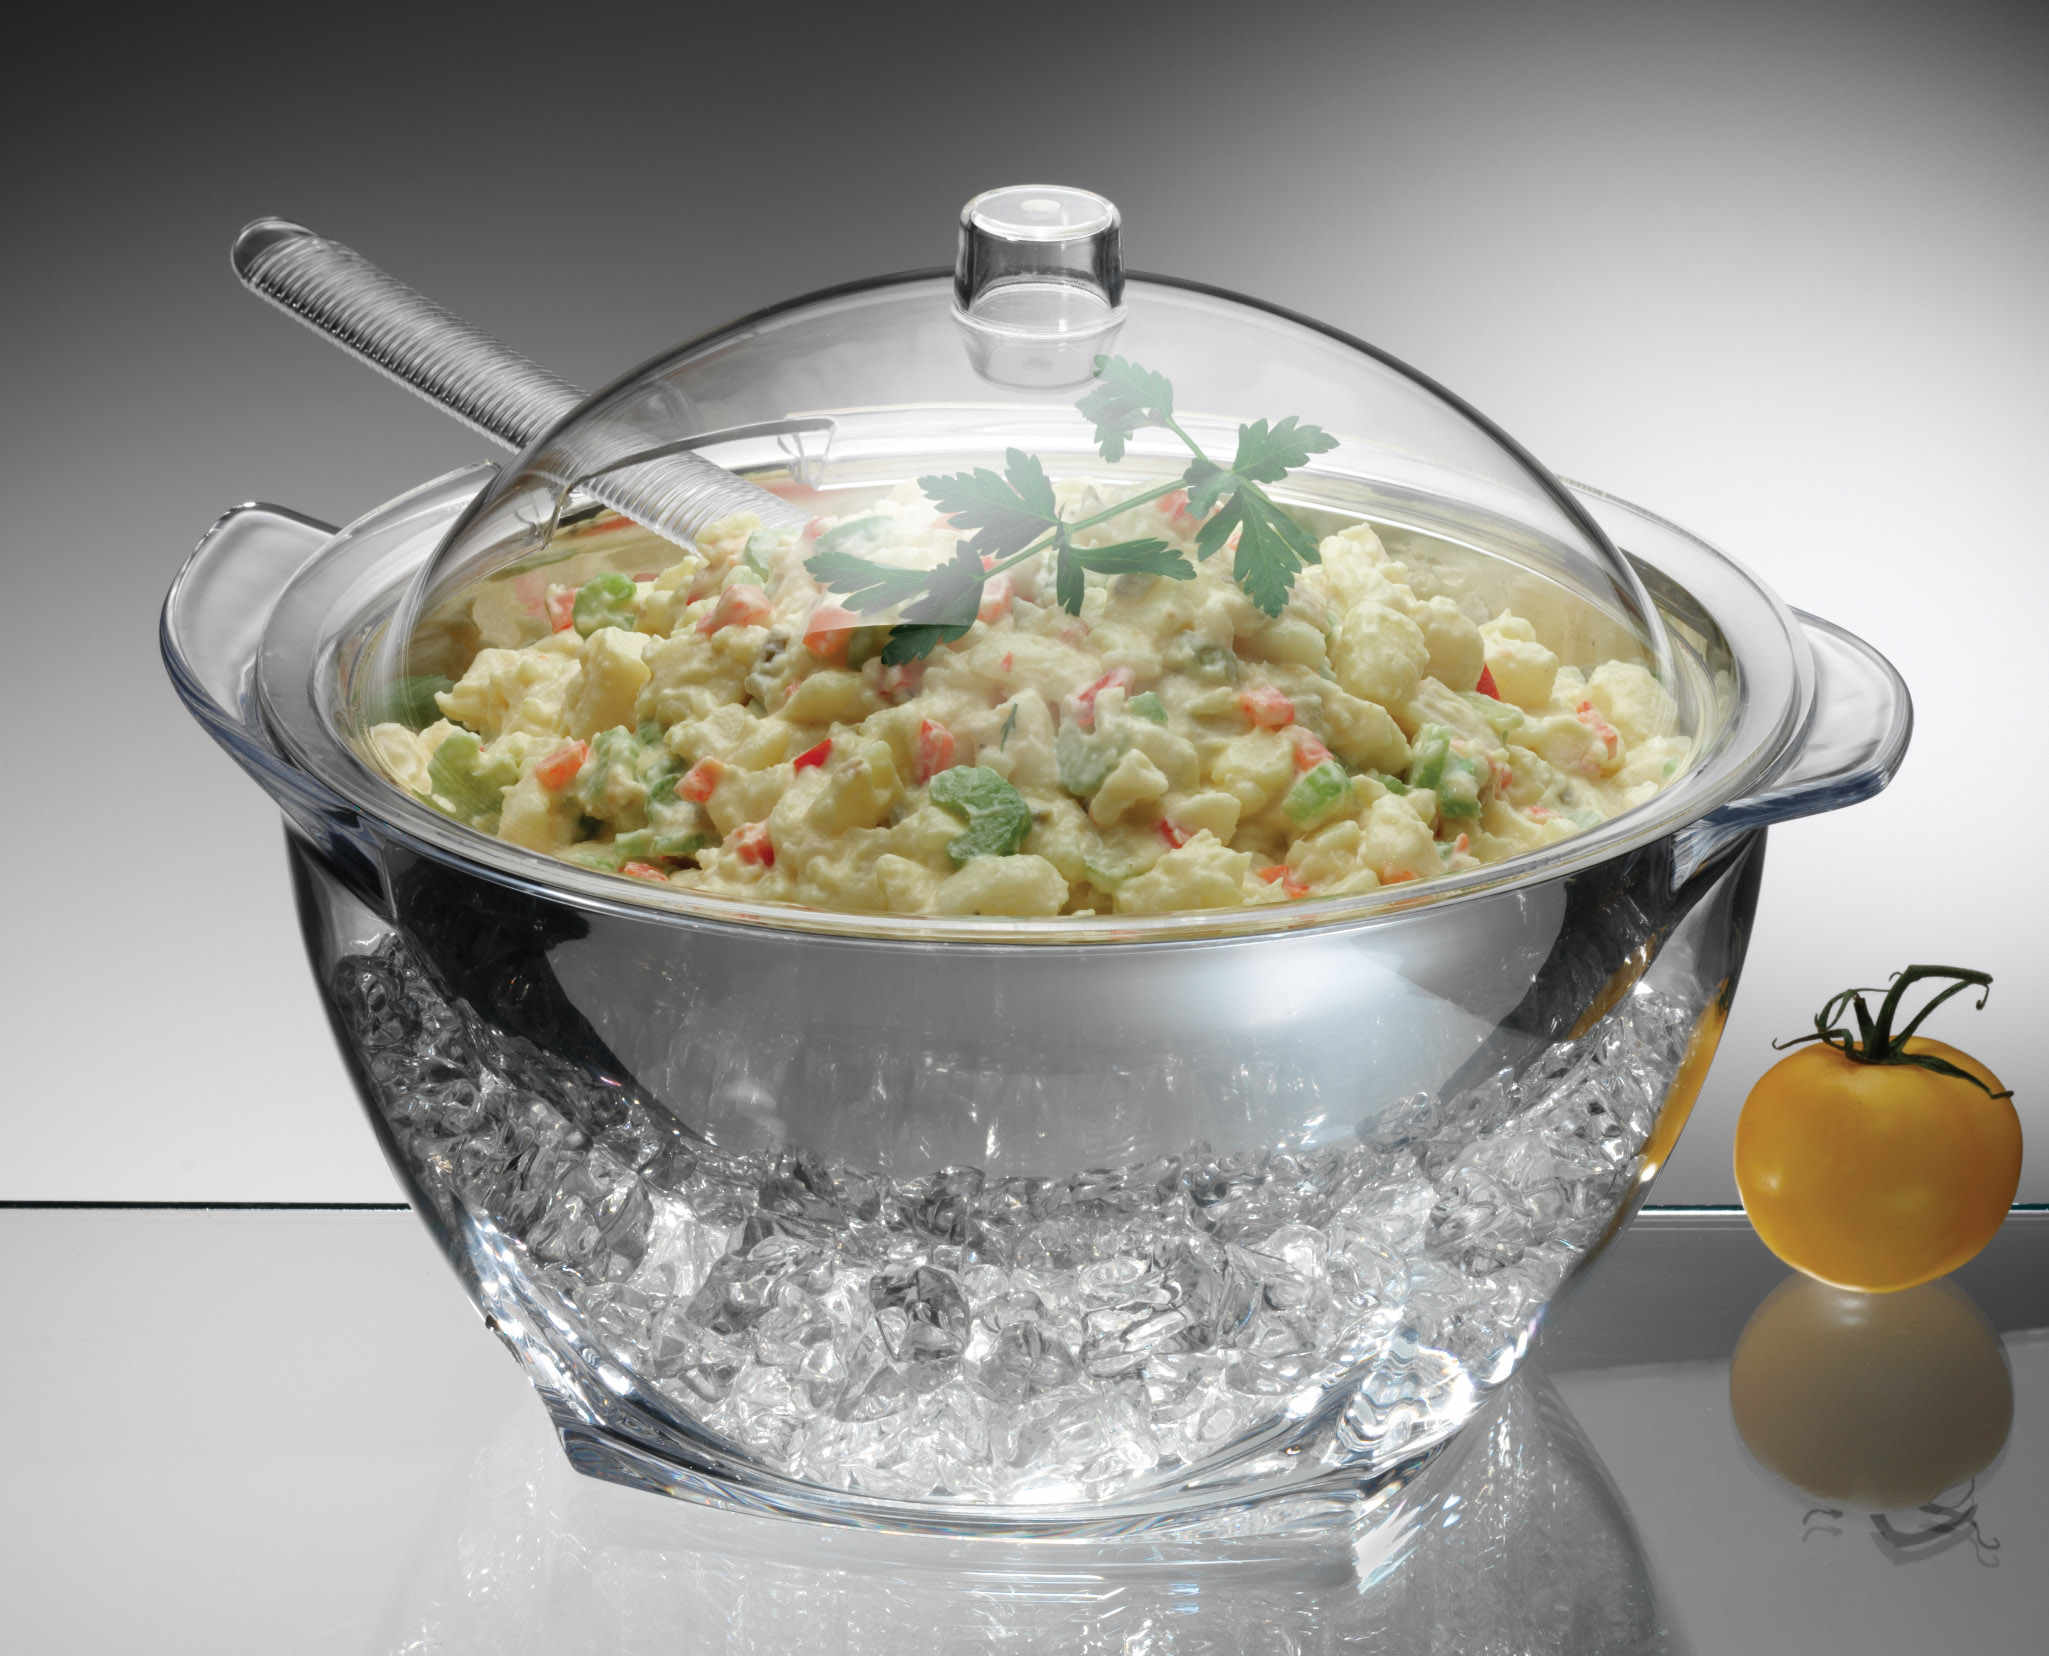 PRODYNE IC30 ICED SALAD WITH ACRYLIC DOME LID SALAD SERVERS